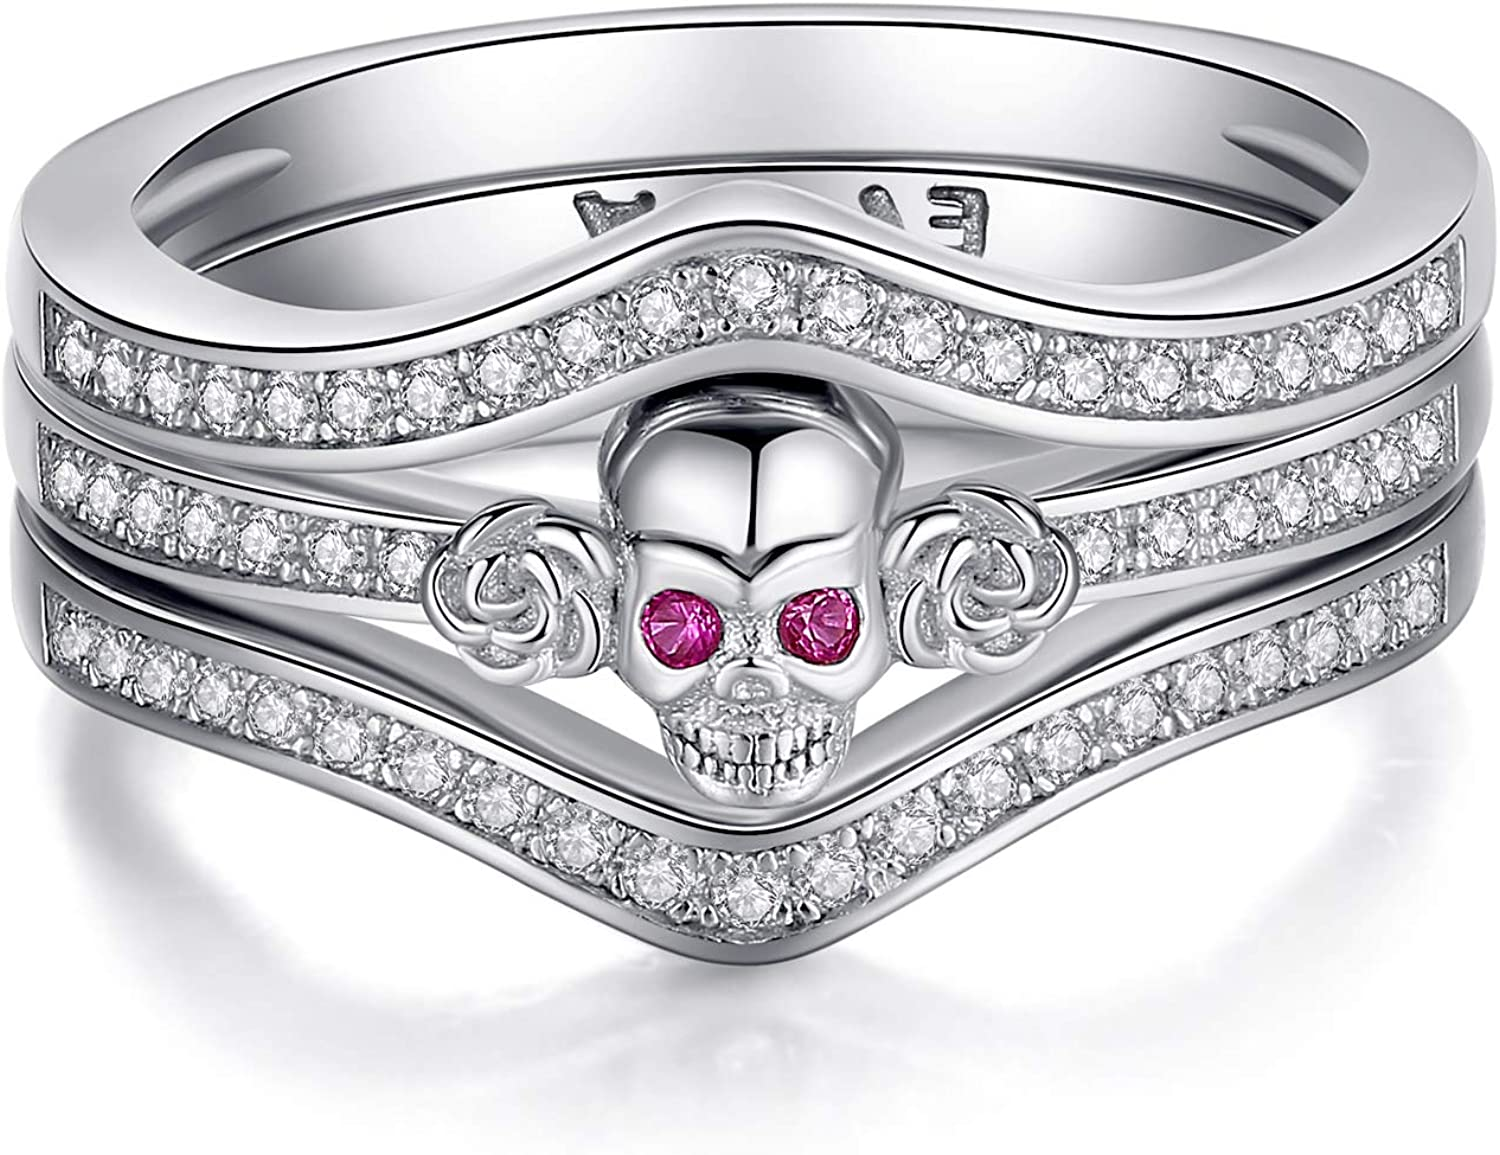 Thumb Rings for Women Sterling Silver Promise Engagement Skull Wedding Bands with Amethyst Birthstone and White Cubic Zirconia